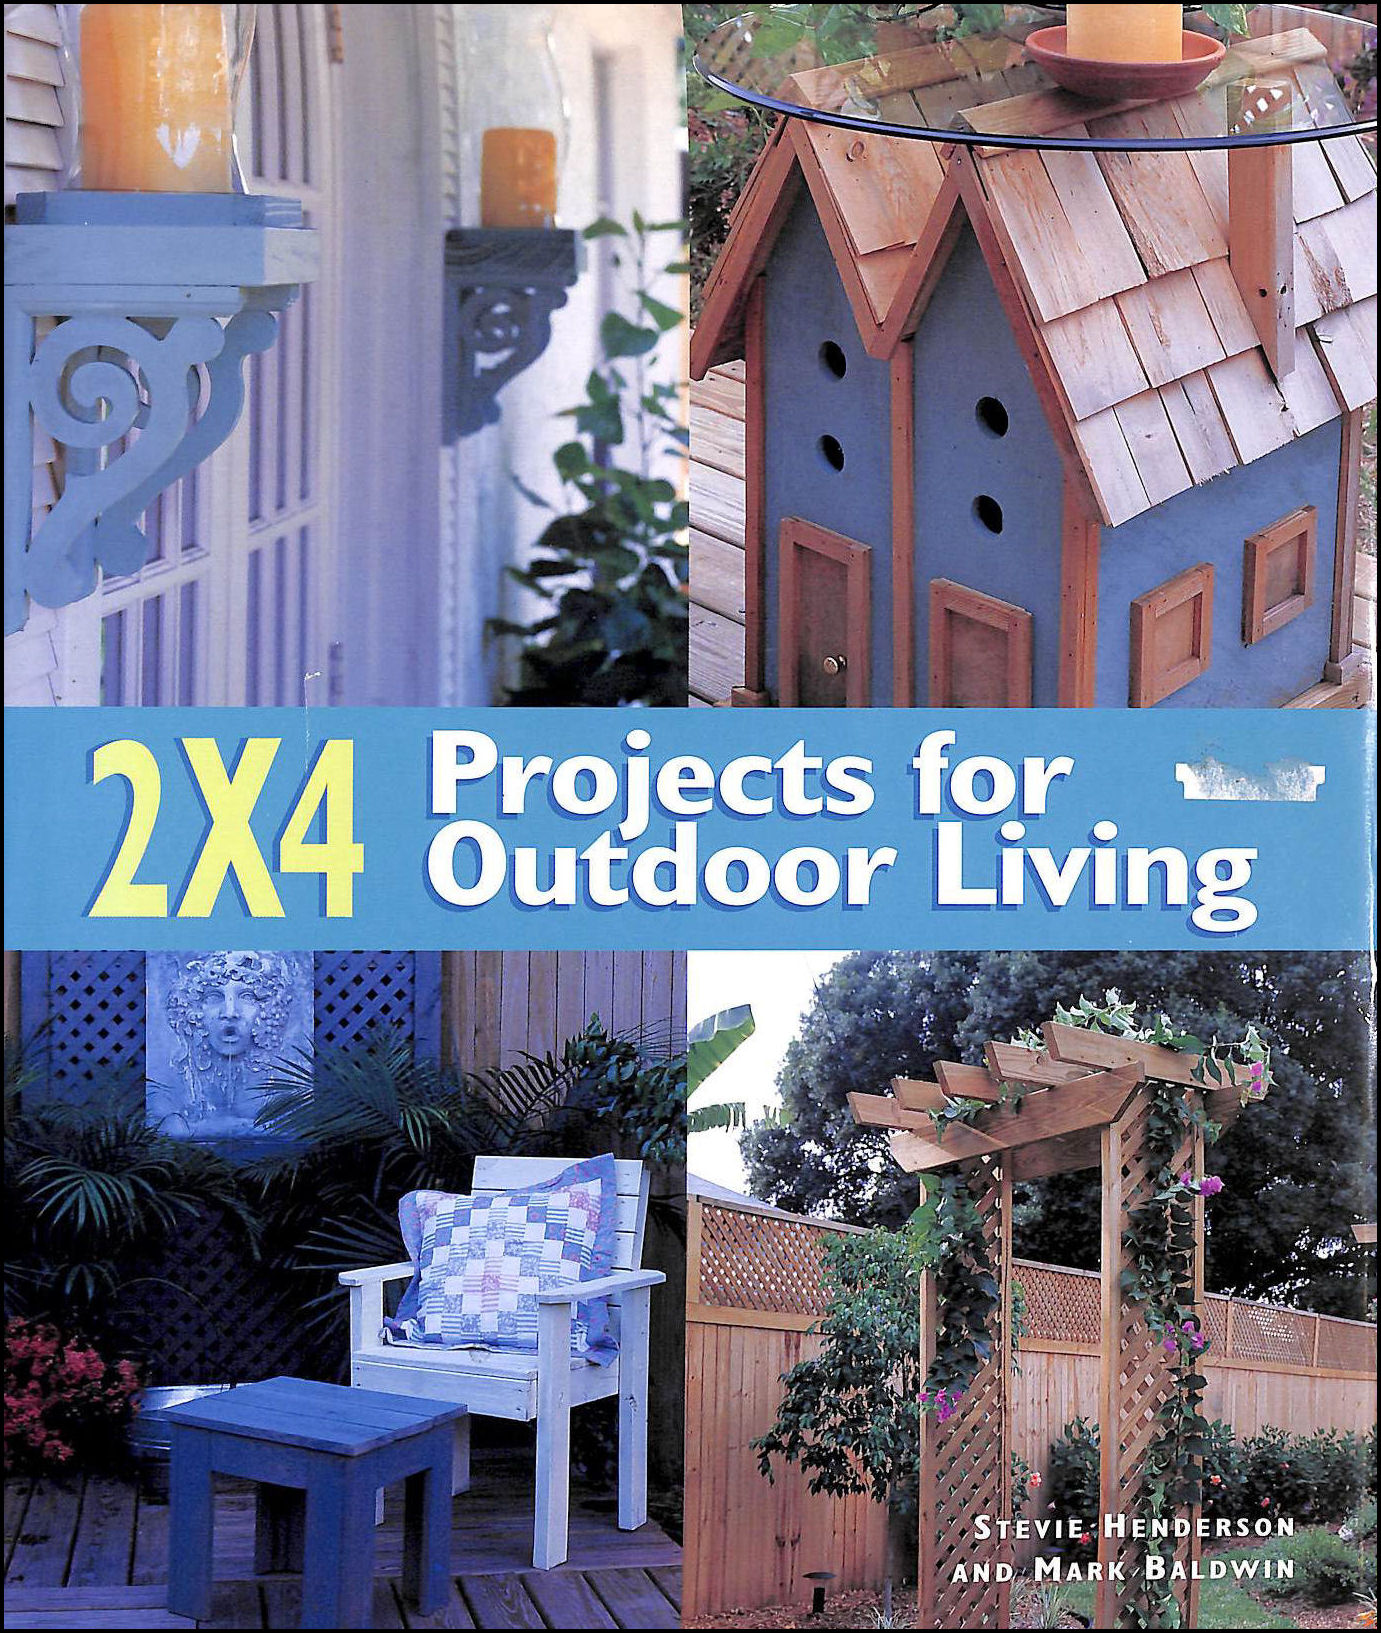 2 X 4 Projects for Outdoor Living, Henderson, Stevie; Baldwin, Mark